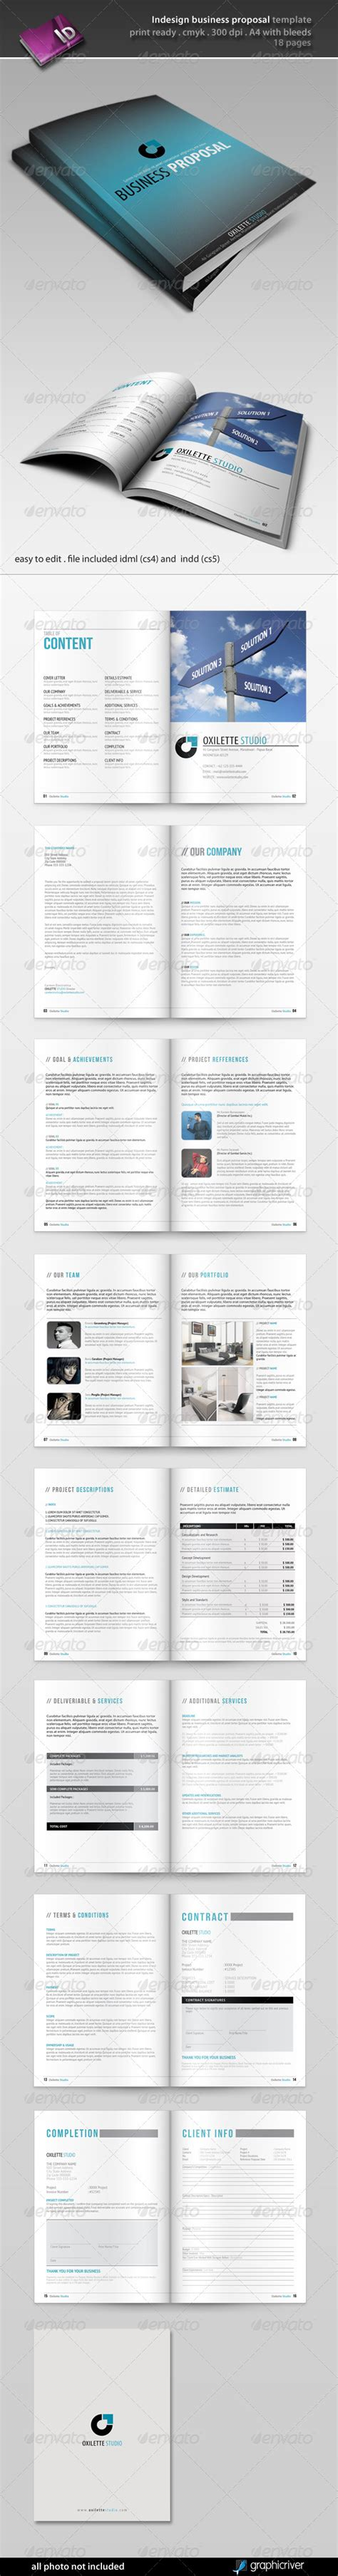 business plan indesign template indesign business template project